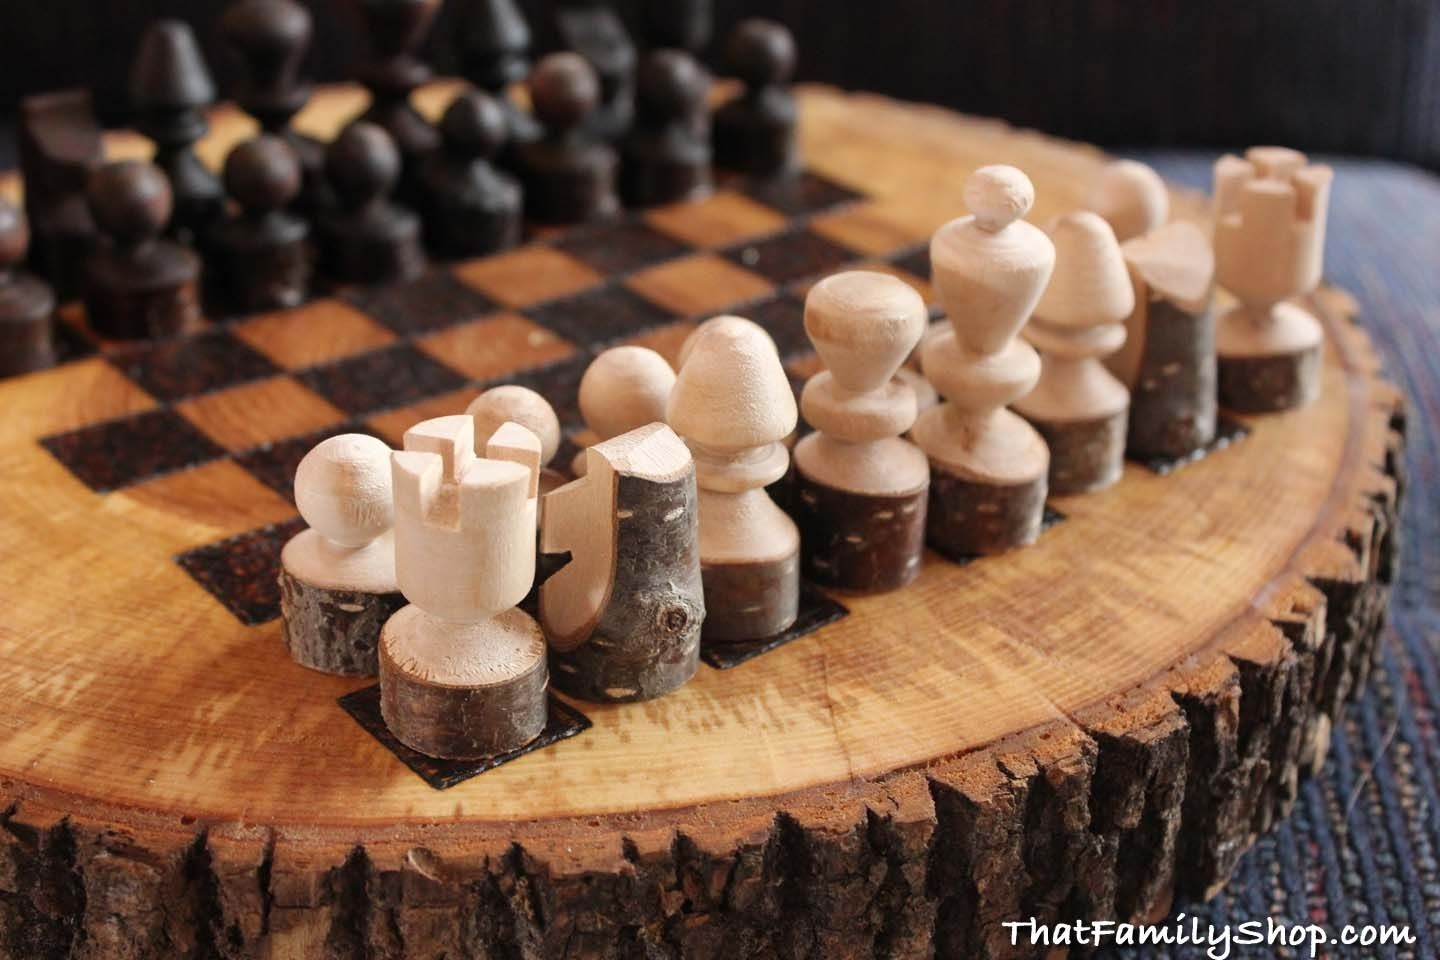 Cool Idea! Get Unique Chess Sets At Chess Baron  Http://www.chessbaron.ca/unusual Chess Sets.php